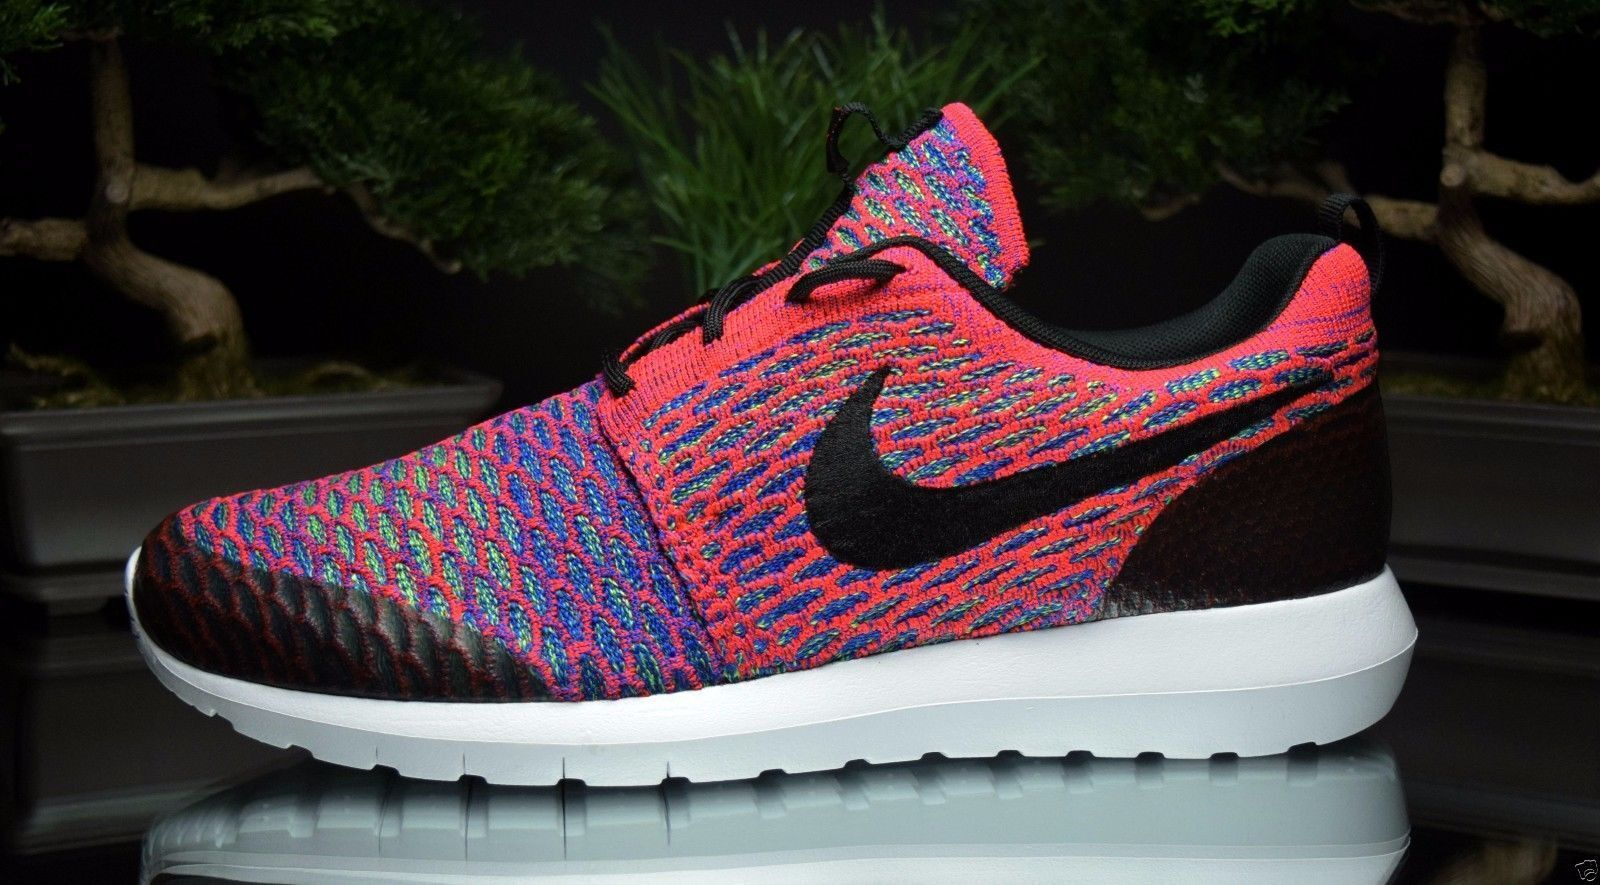 NIKE ROSHE NM FLYKNIT SE SIZE 10 SHOES 816531 600 MENS RUNNING SHOES